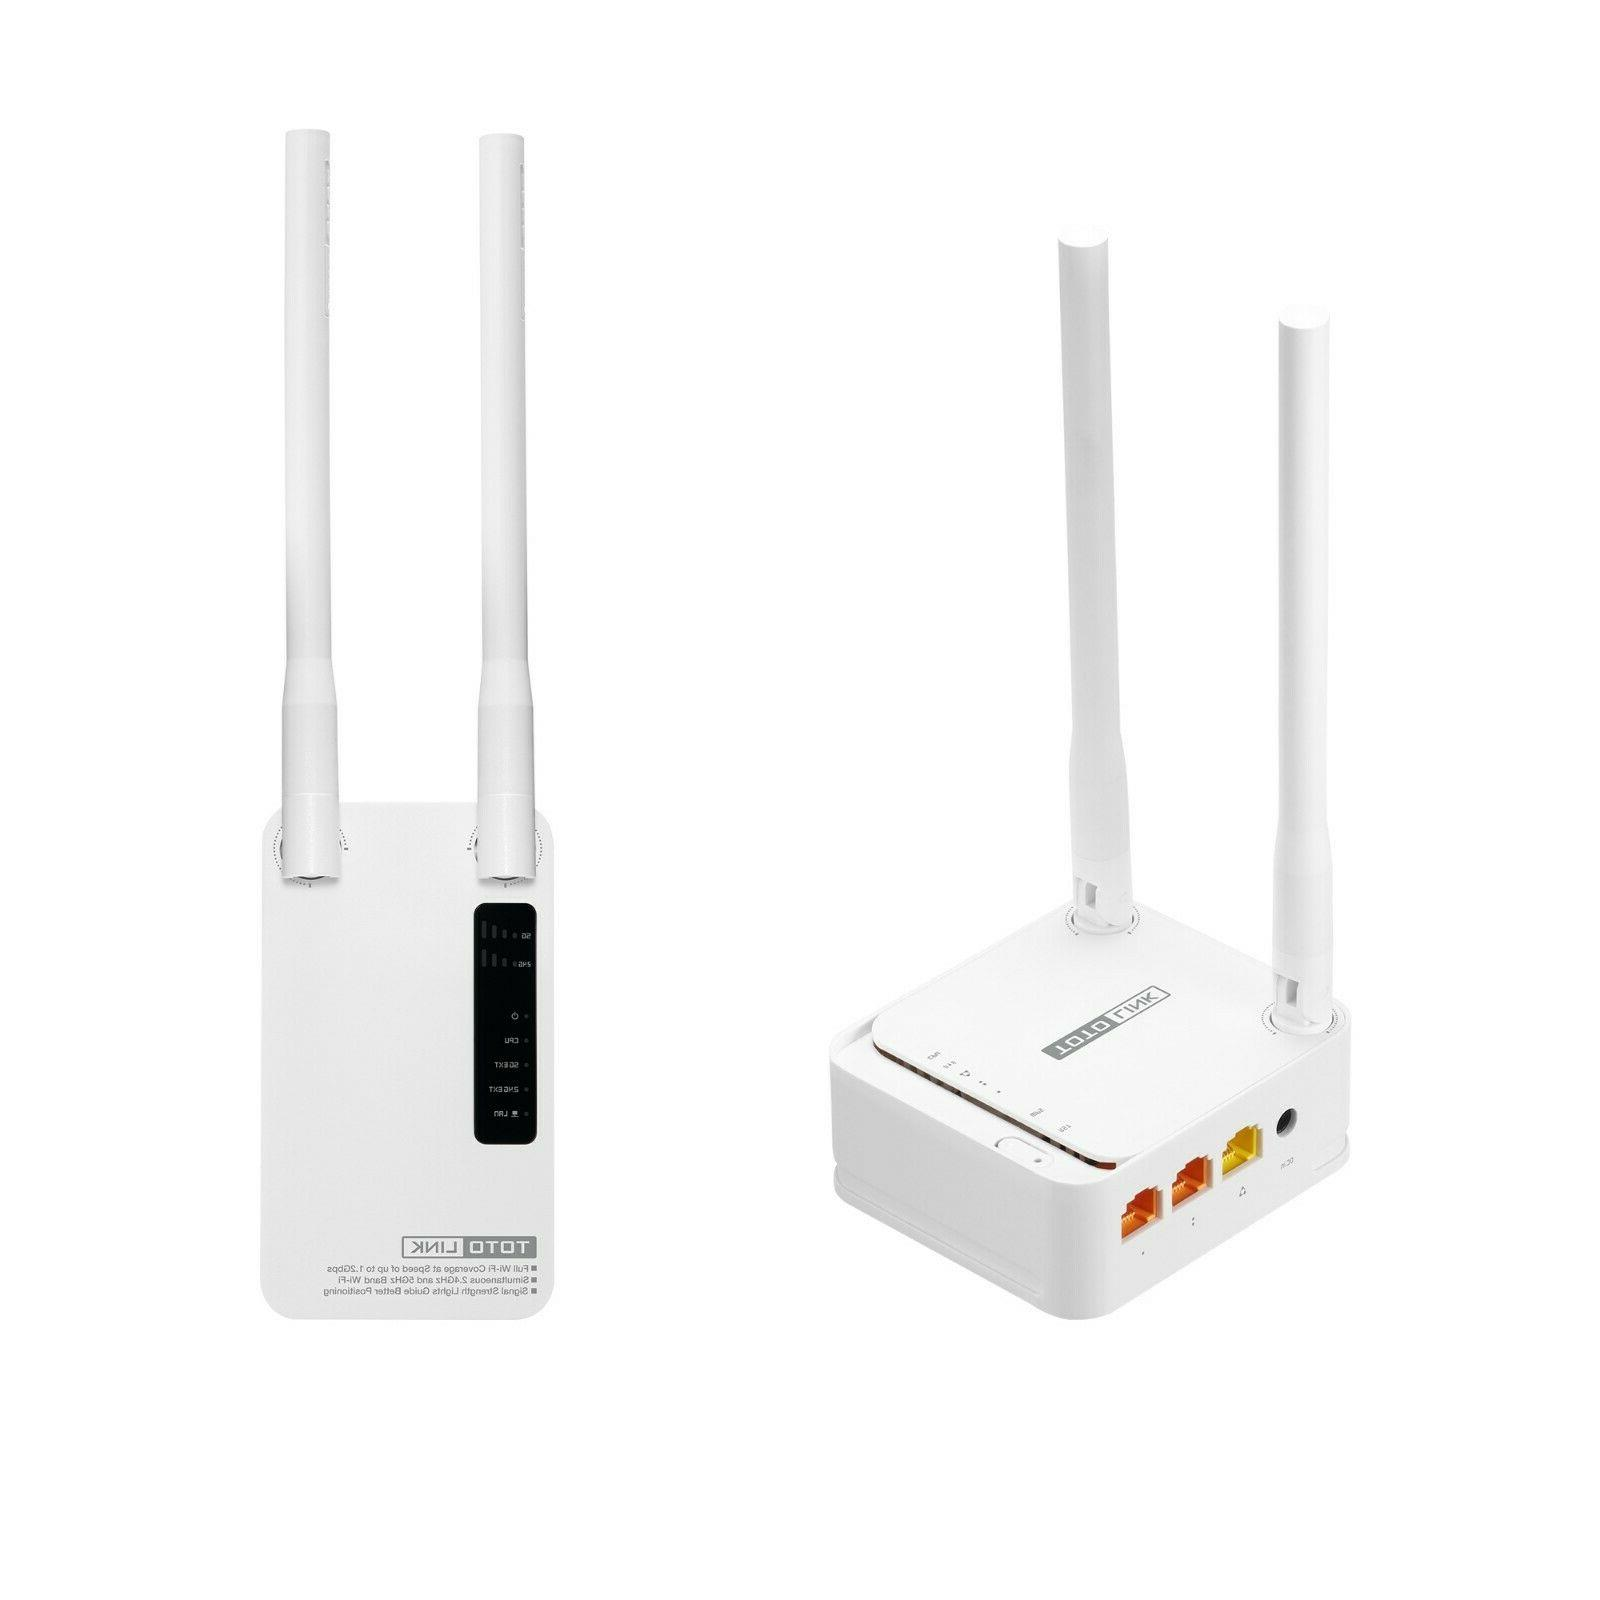 ac1200 wi fi router a3 with dual